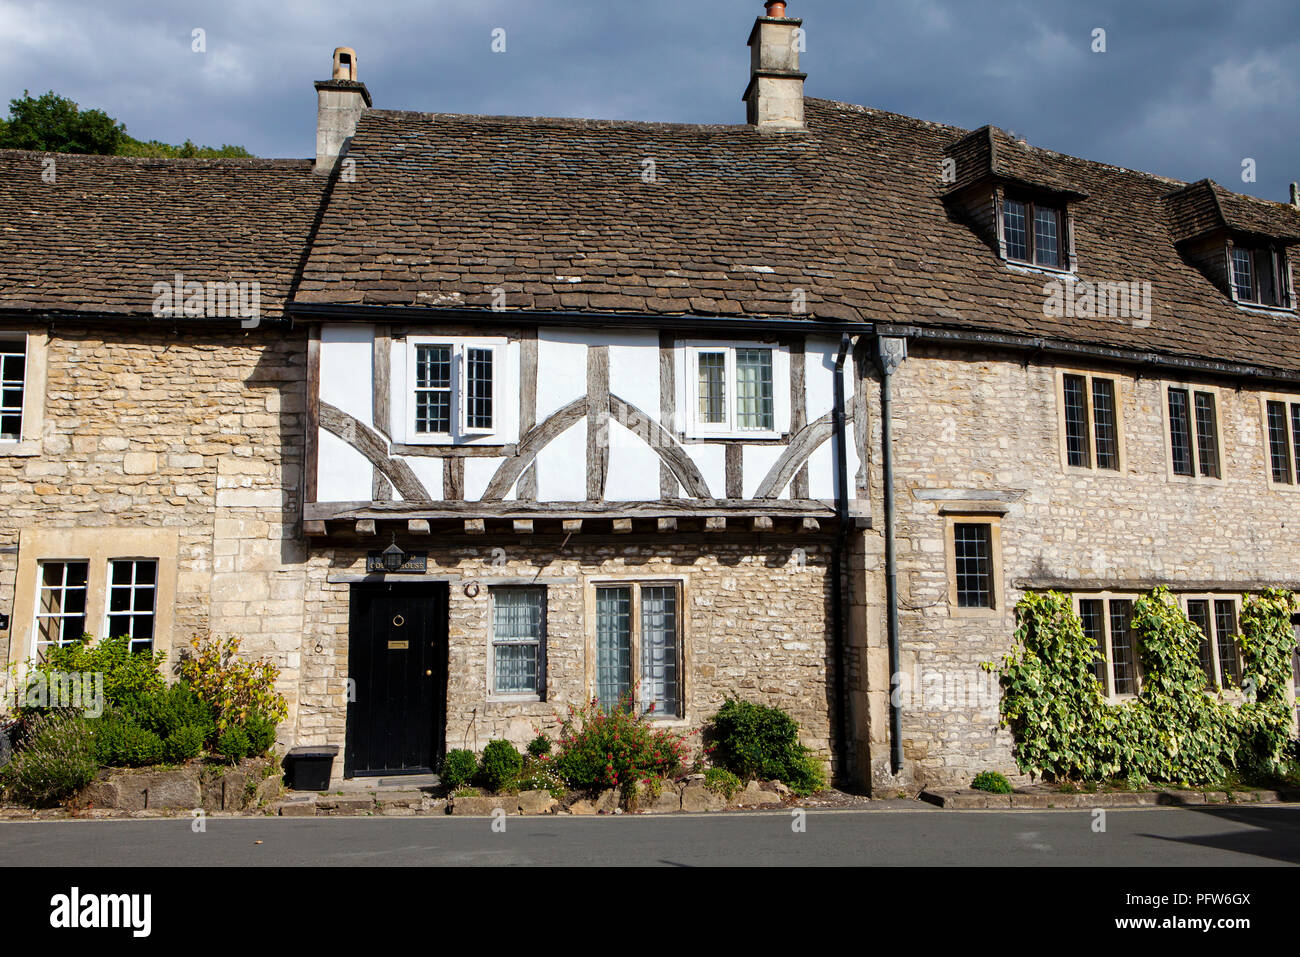 Castle Combe, UK - 9th August 2018: Castle Combe is a quintessentially English village often named as the 'prettiest village in England.' - Stock Image